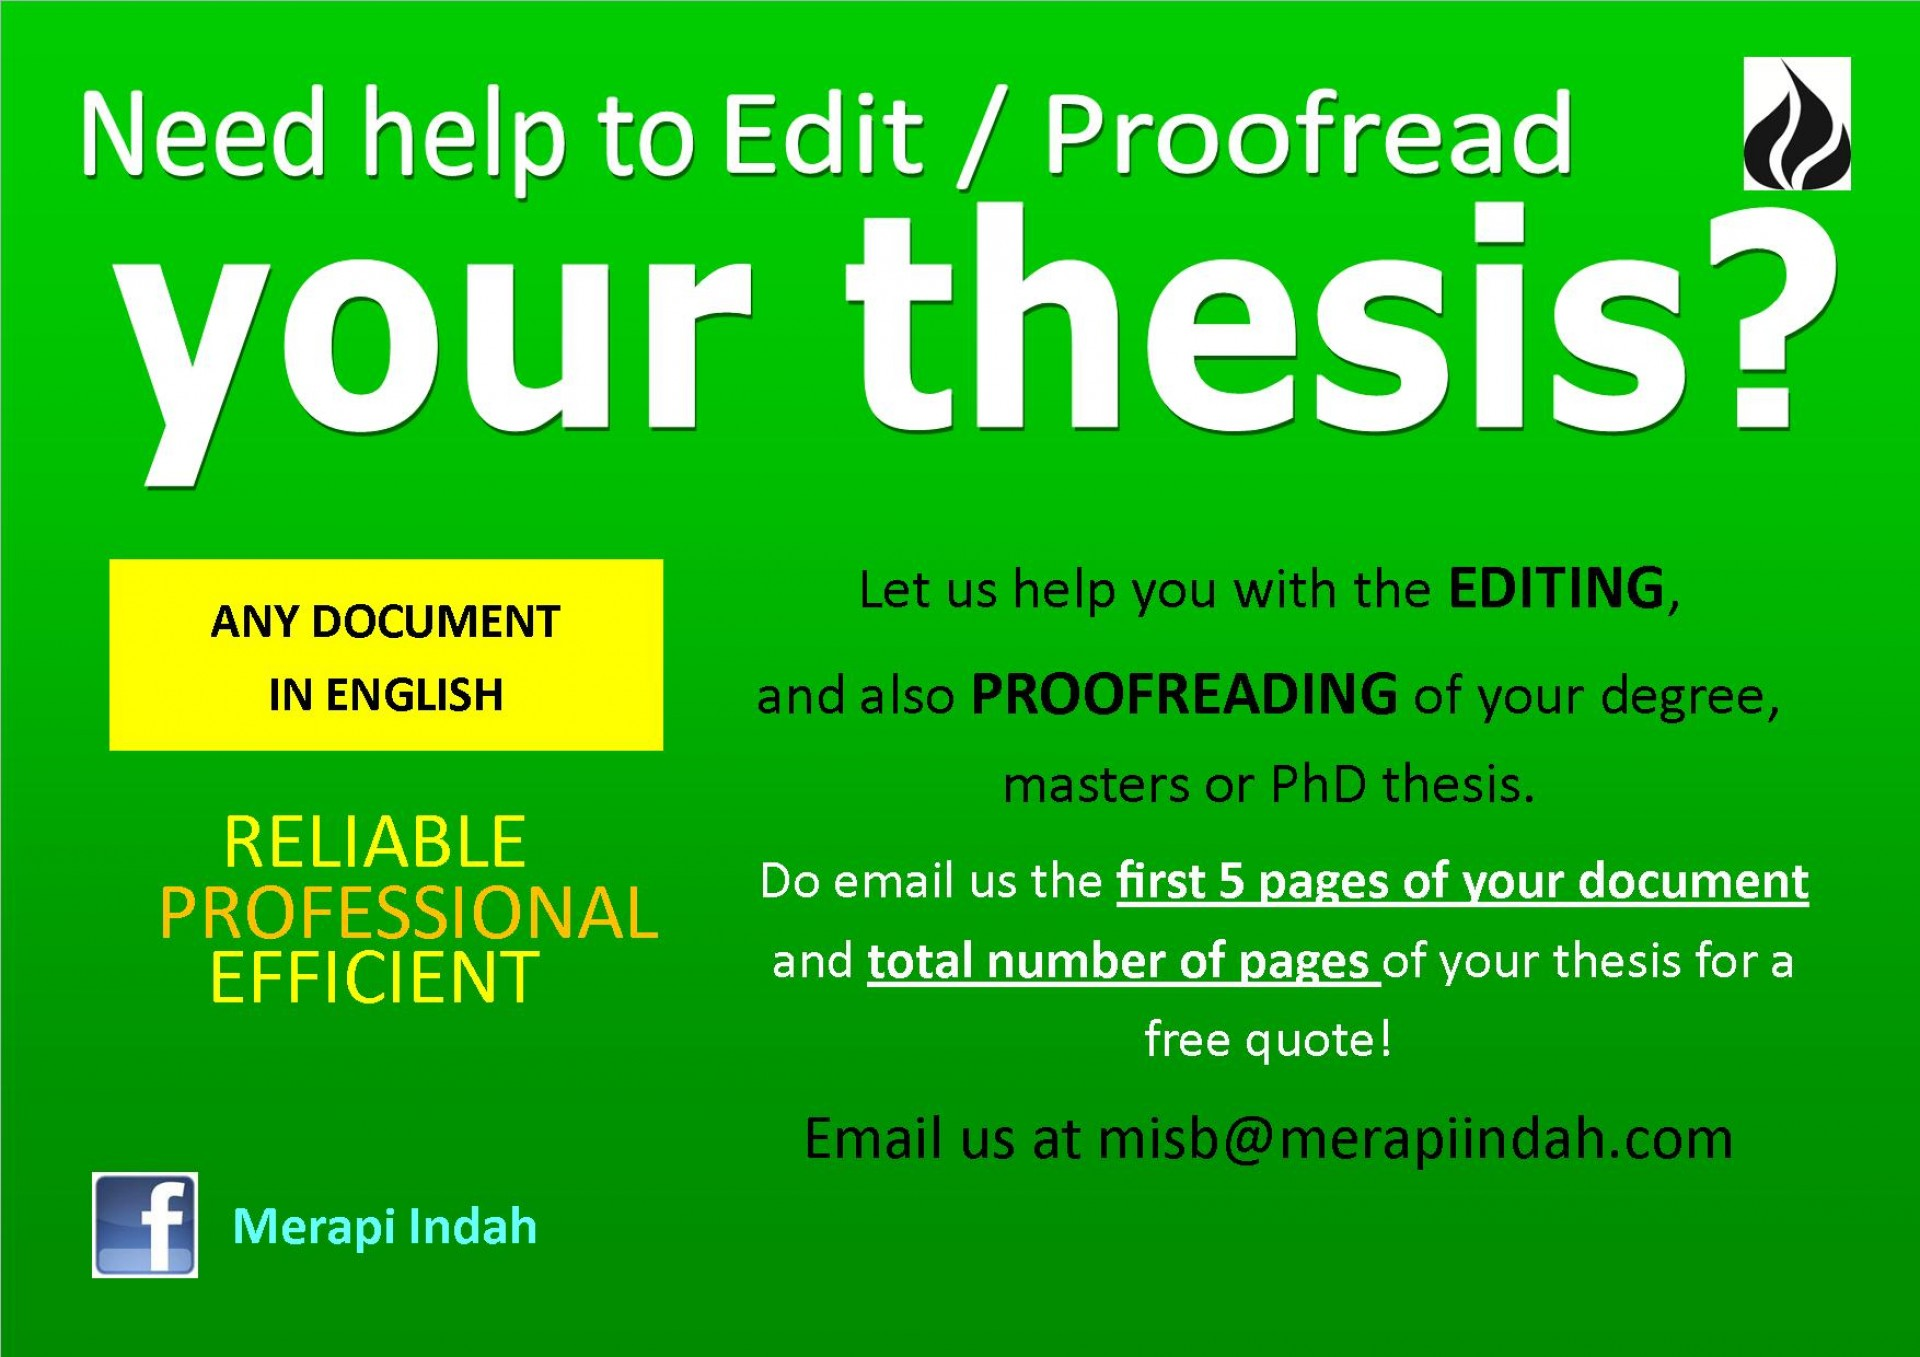 019 Essay Example Editor Misb Editing Proofreading Flyer Thesis Marvelous Free Service Corrector Generator Job 1920